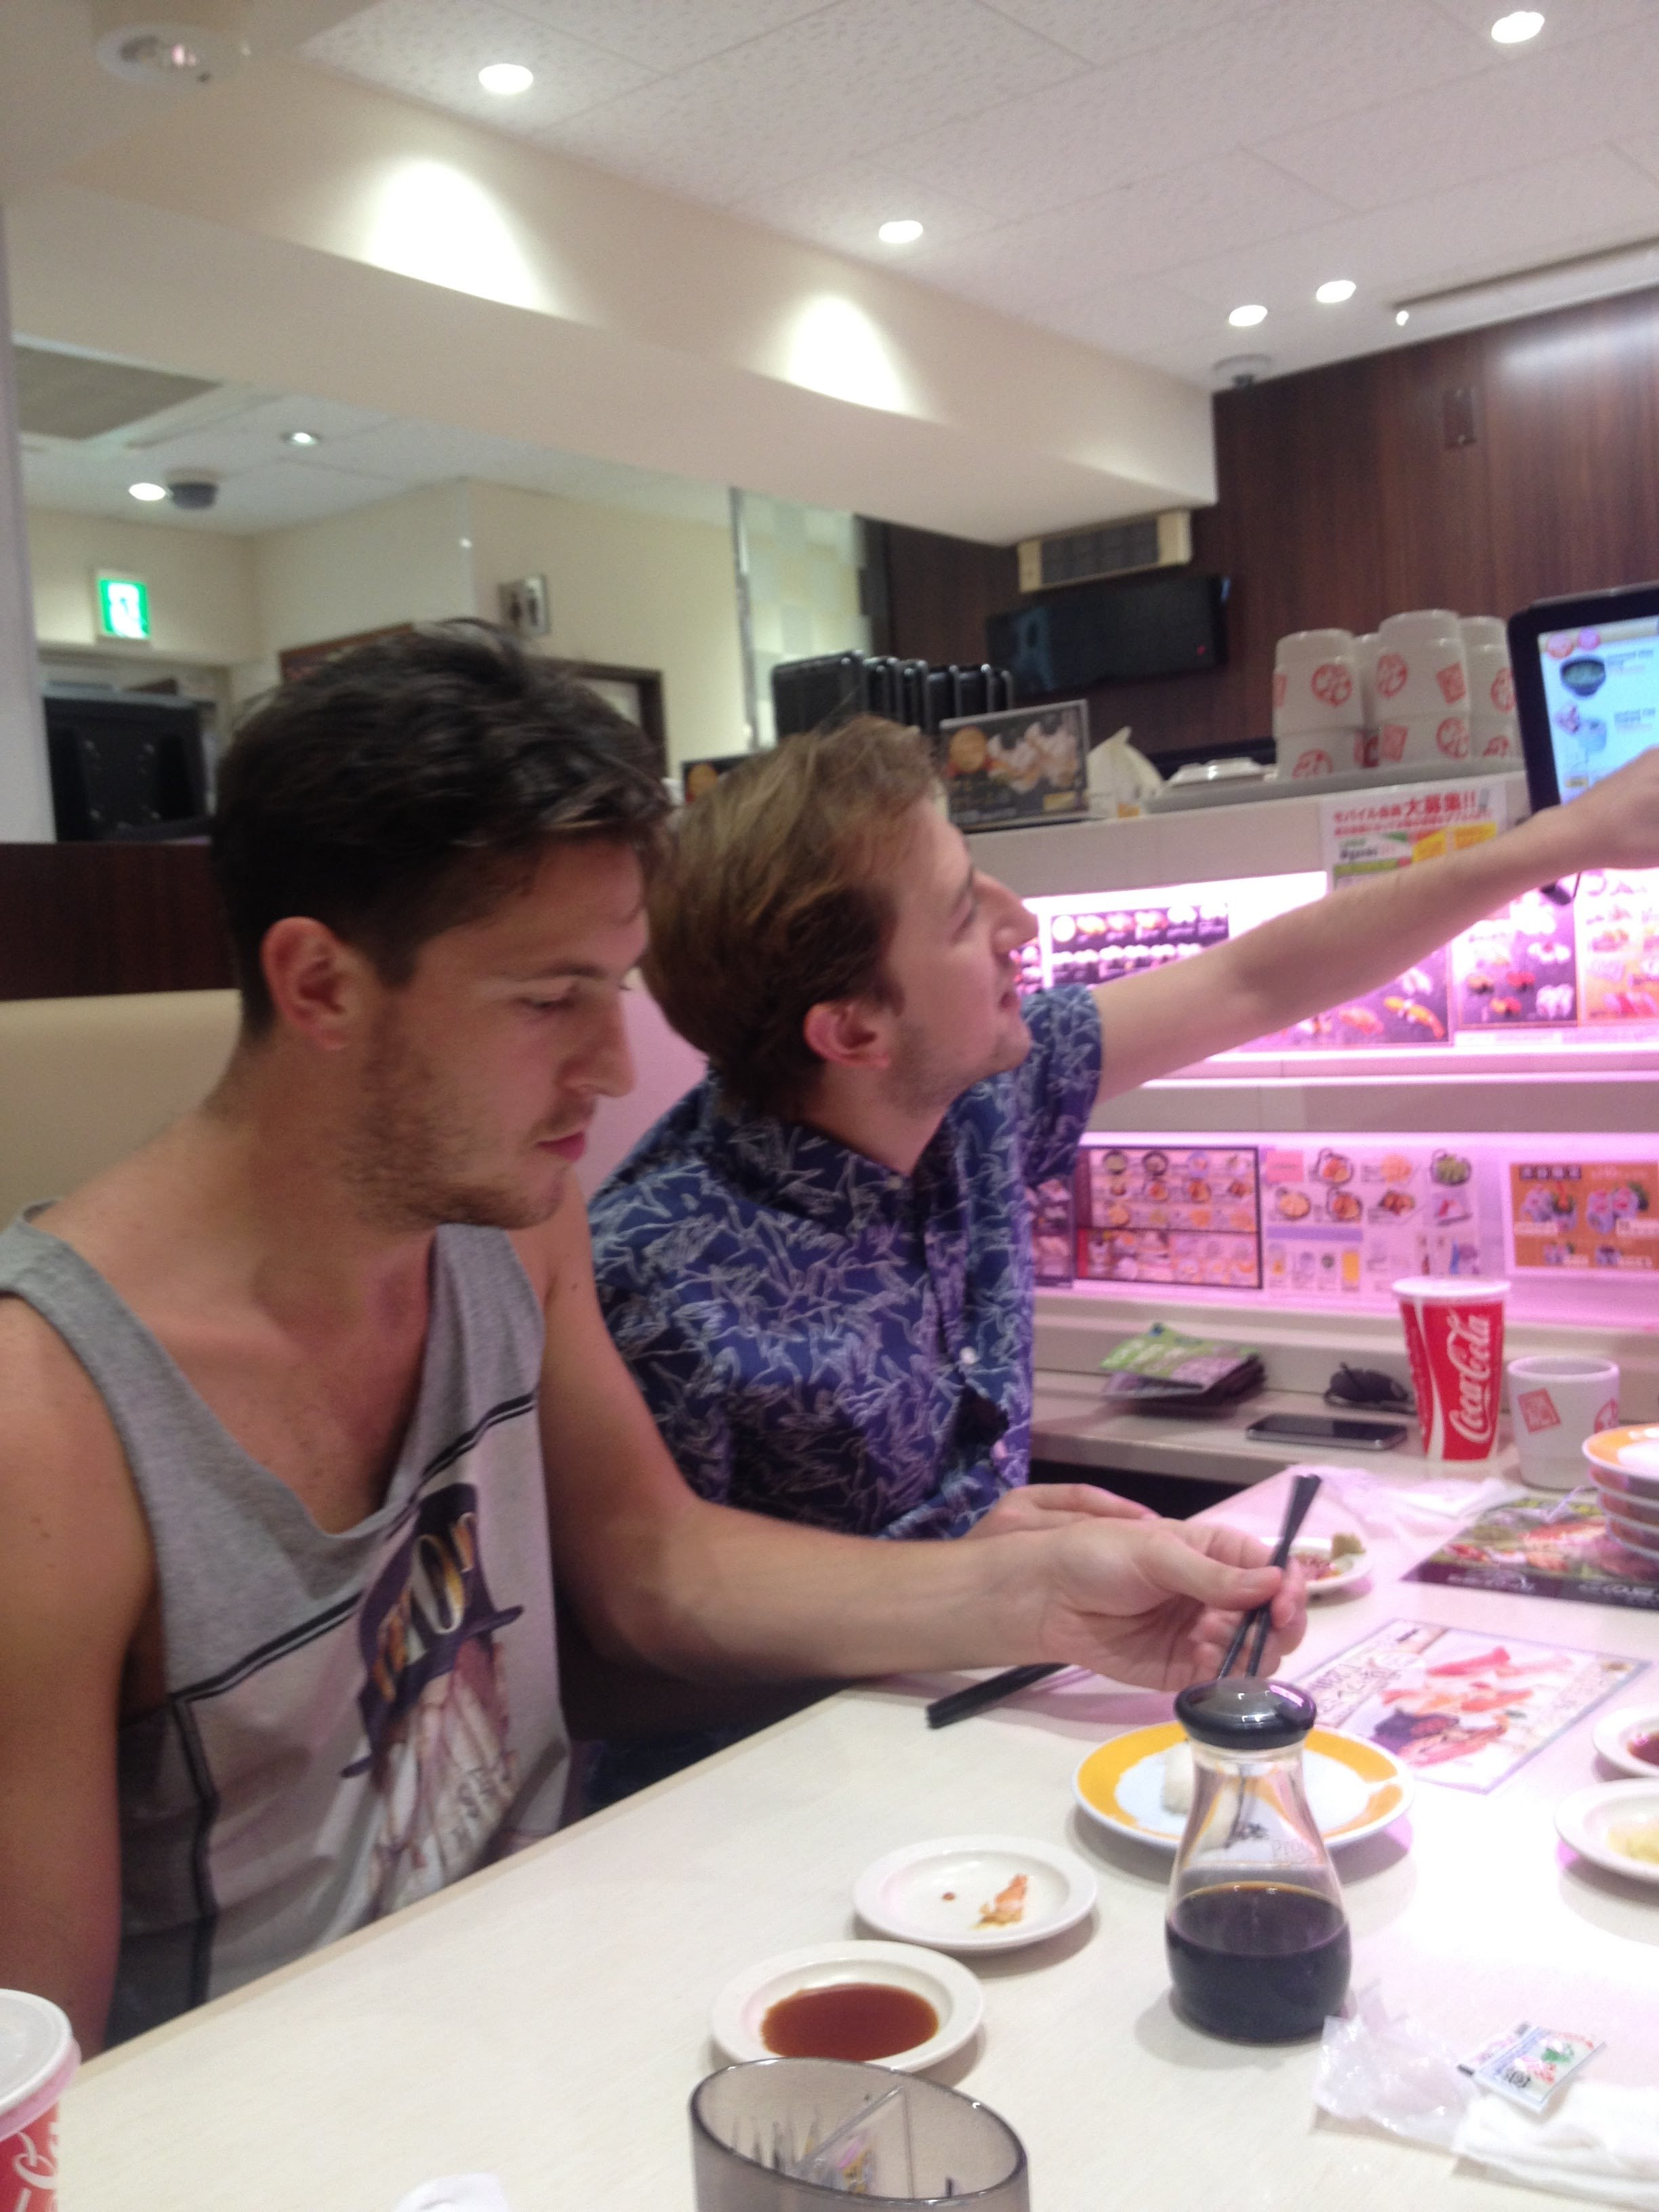 Their first time trying sushi train!